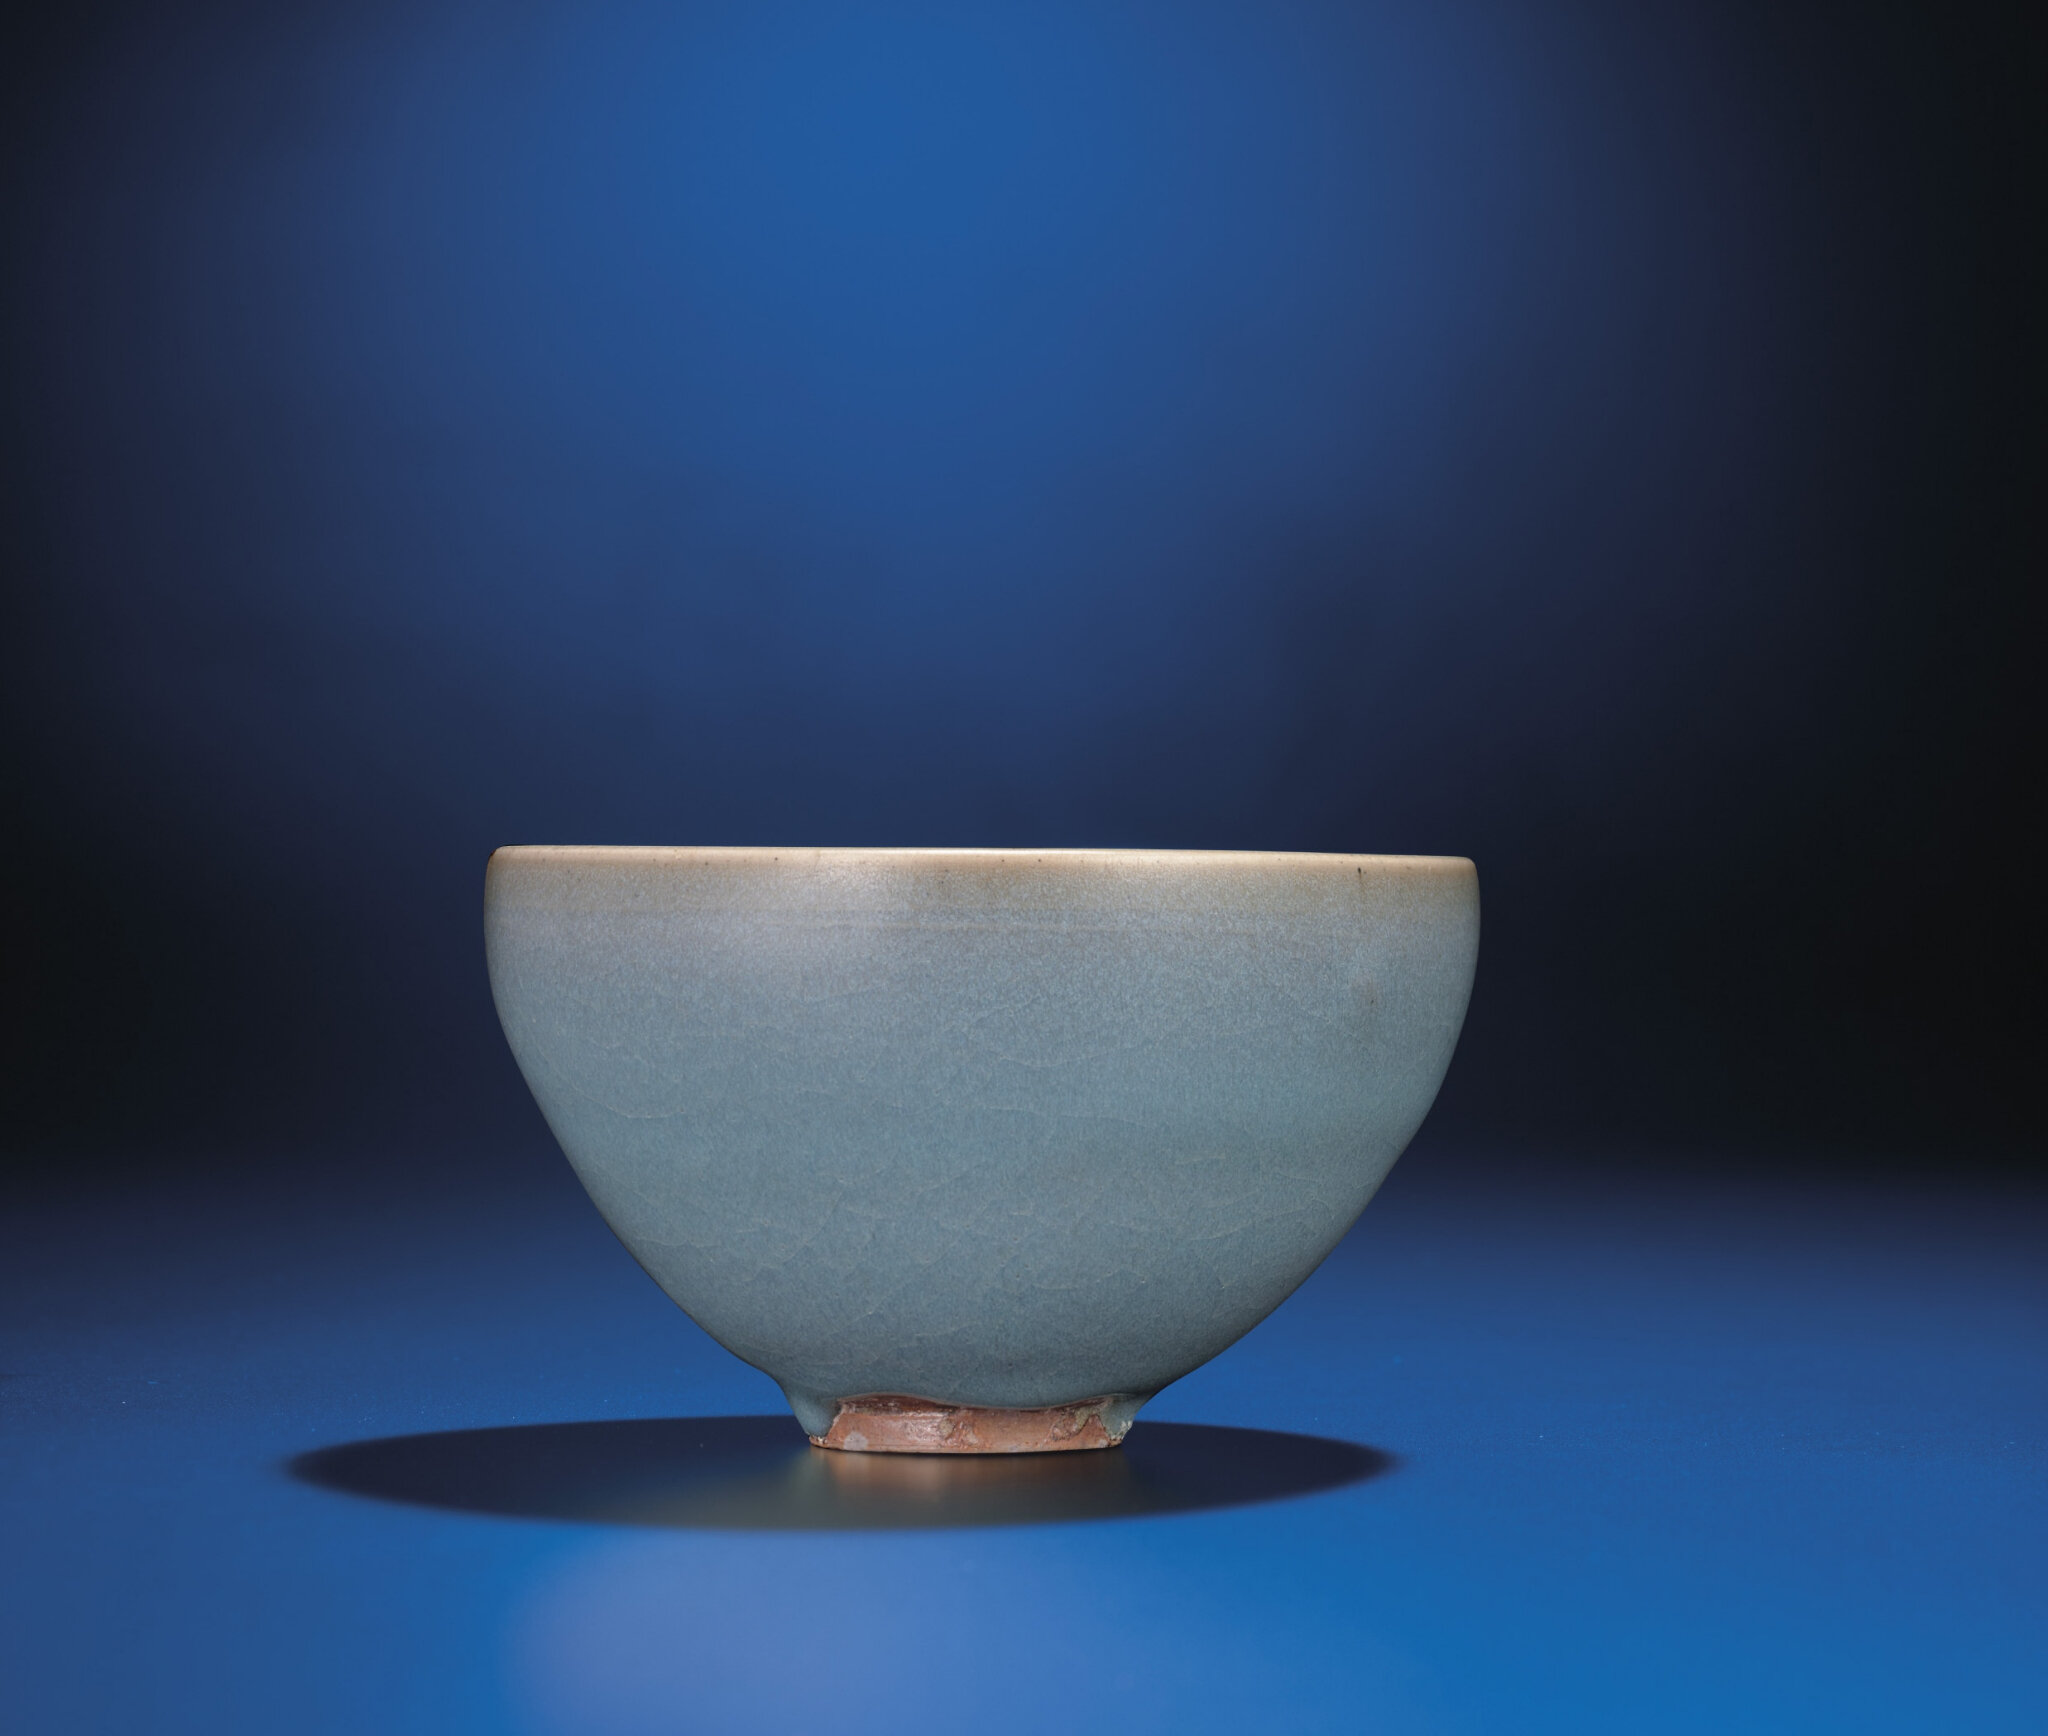 A Jun-glazed deep bowl, Jin-Yuan dynasty, 12th-13th century